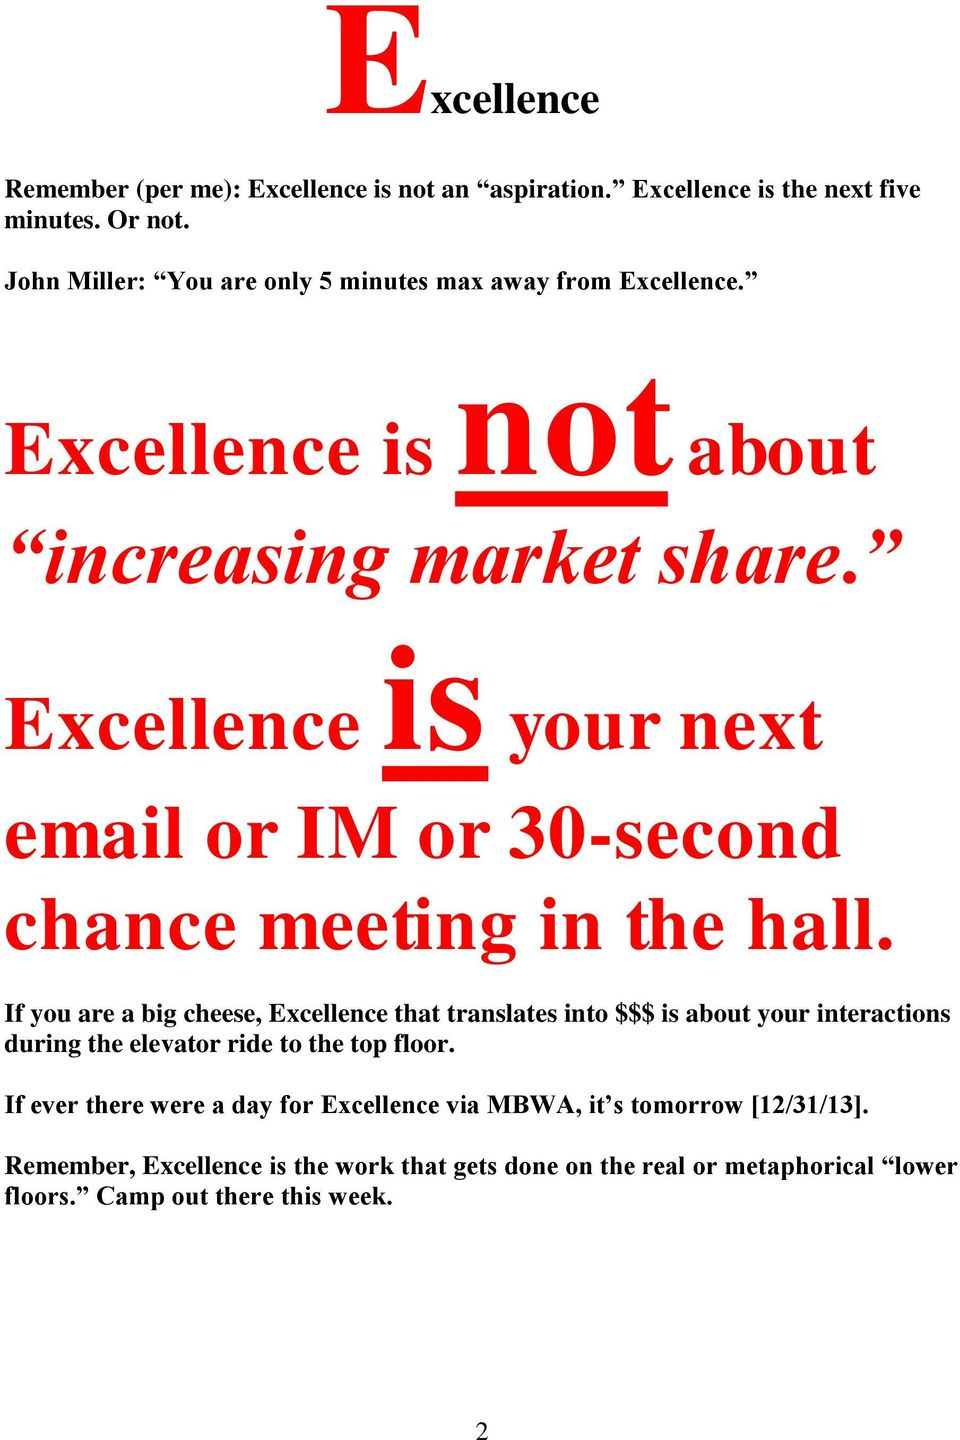 Excellence is your next email or IM or 30-second chance meeting in the hall.